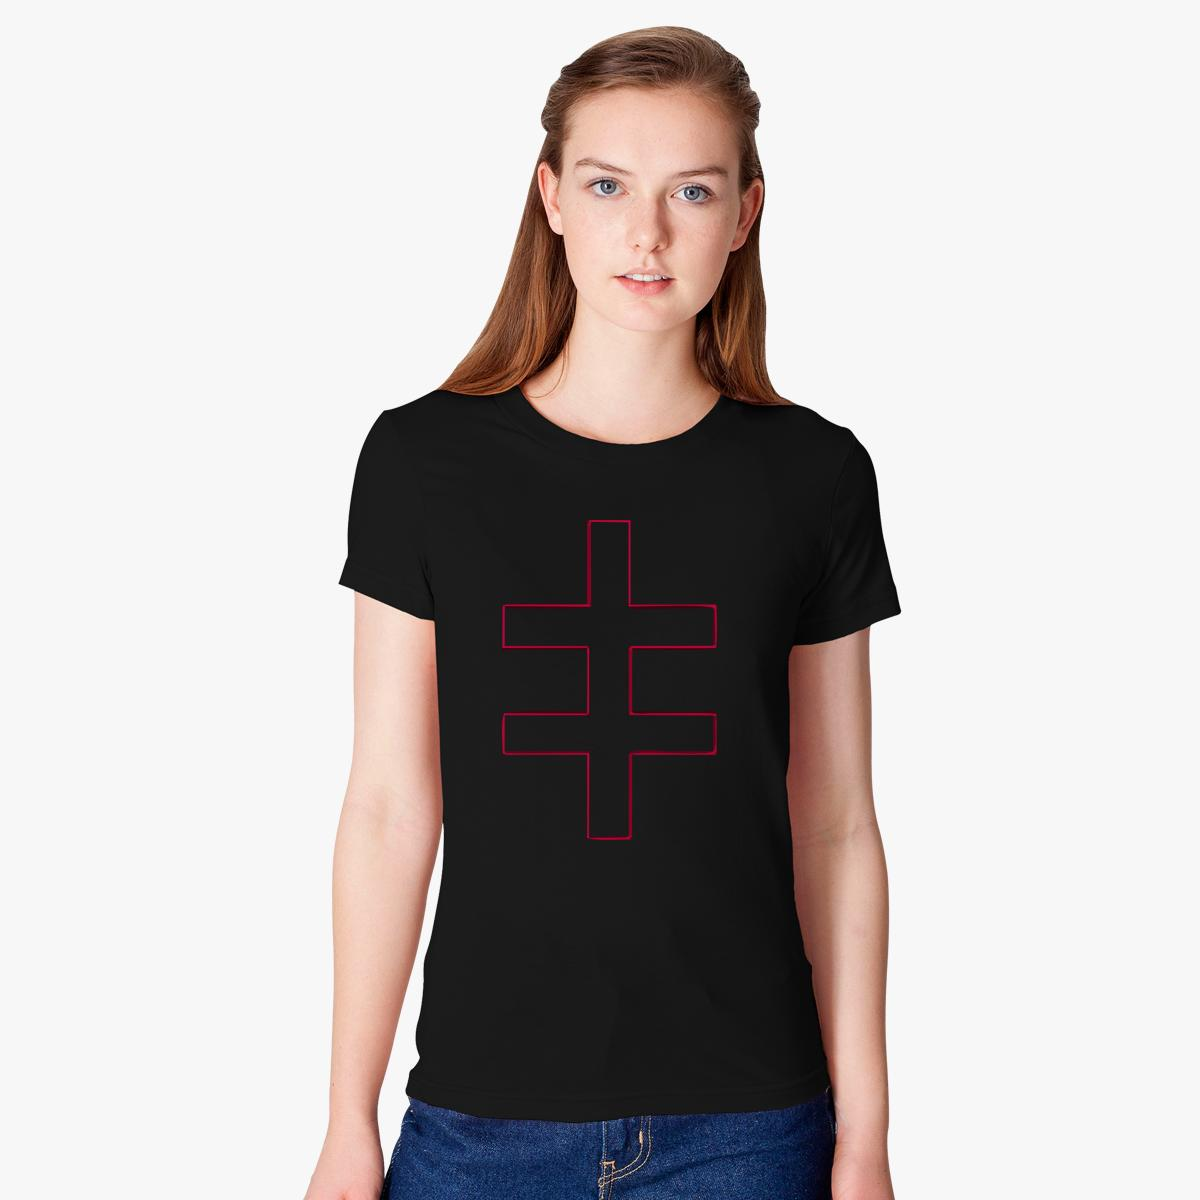 Marilyn manson symbols womens t shirt customon marilyn manson symbols womens t shirt buycottarizona Images